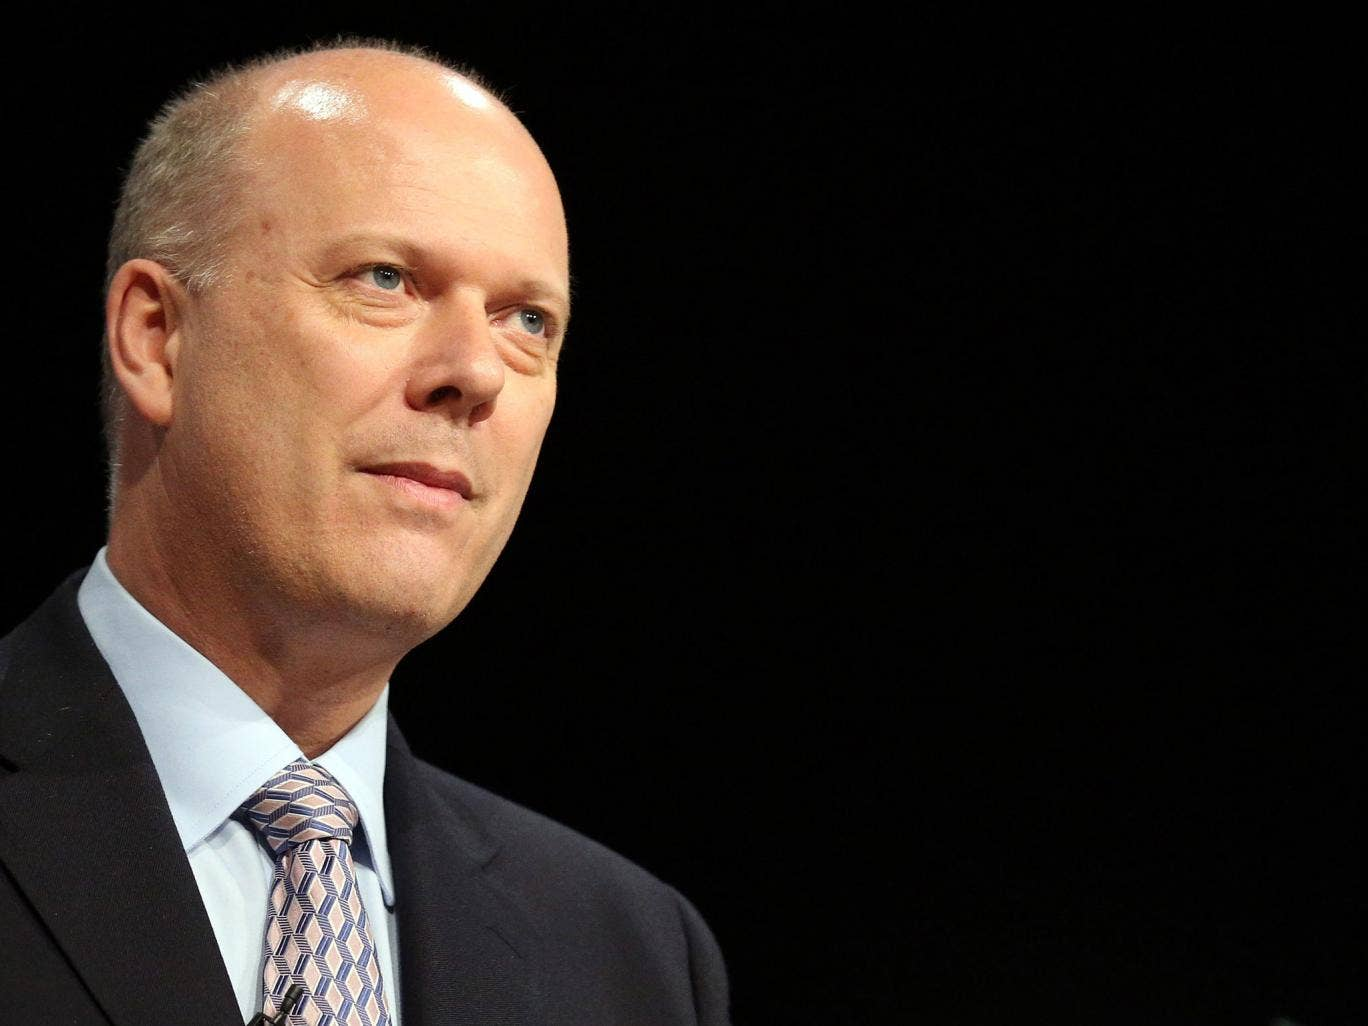 Chris Grayling has furthered angered the Lib Dems by announcing plans to draft new laws to curtail the impact of European human rights legislation on Britain